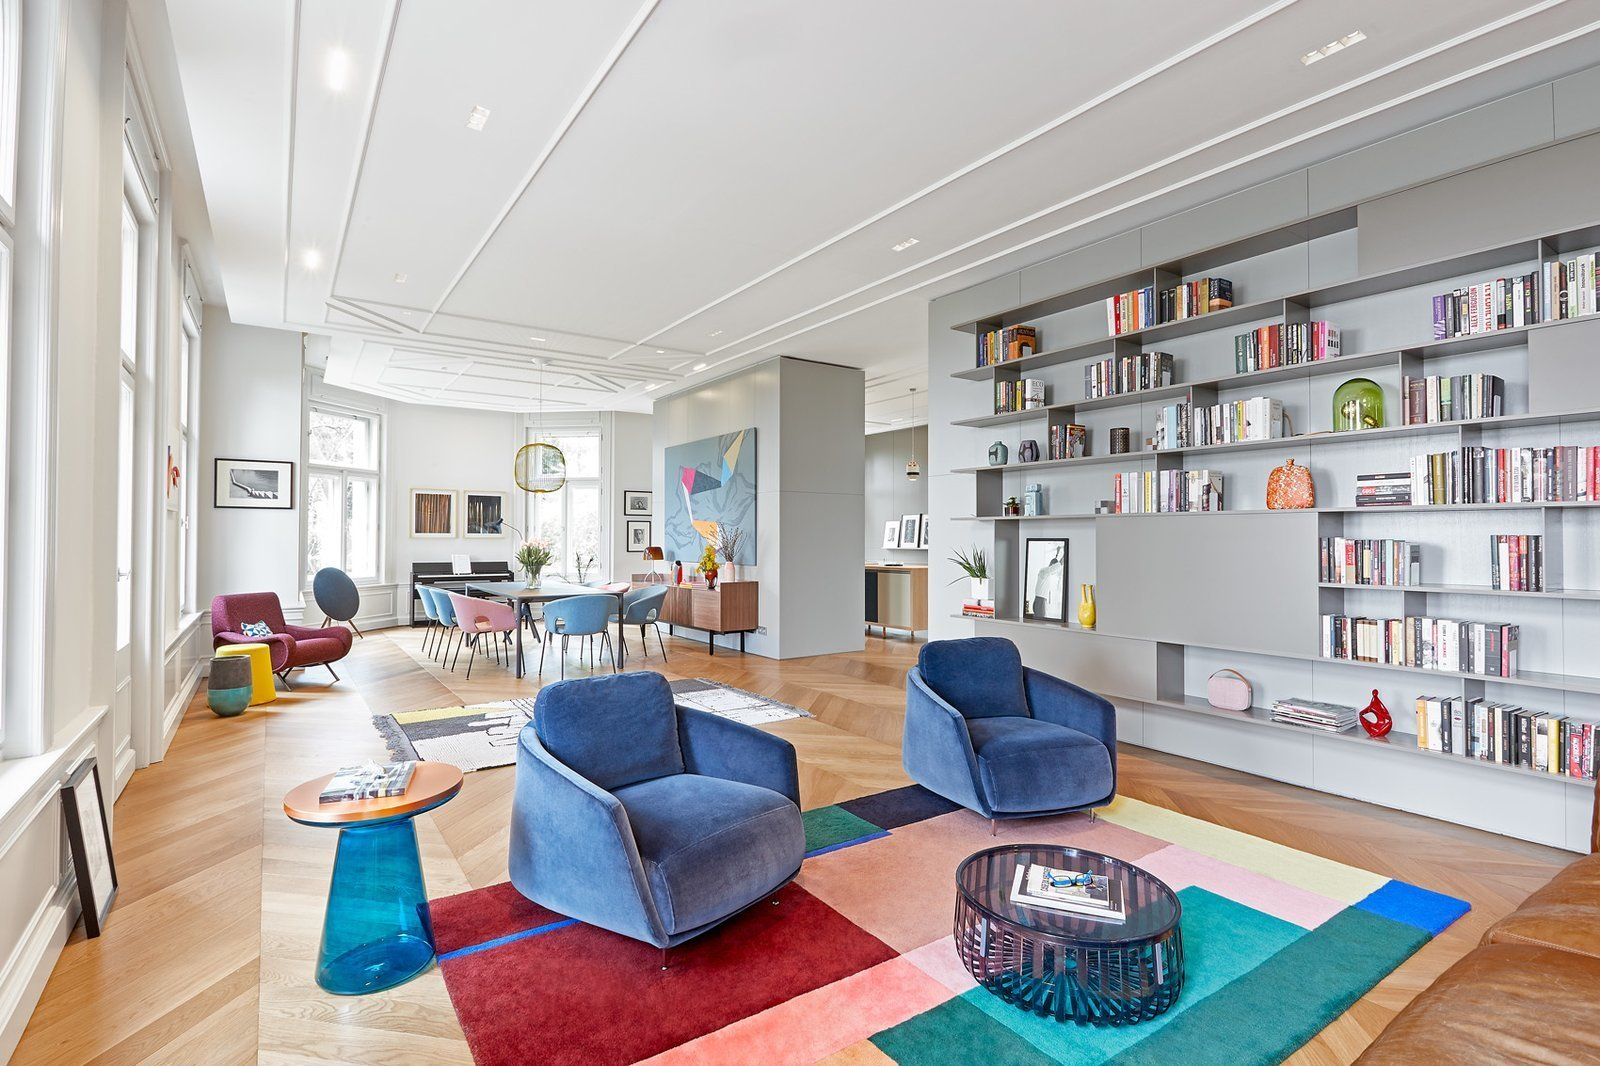 Living Room, Coffee Tables, Chair, End Tables, Light Hardwood Floor, Rug Floor, Pendant Lighting, Recessed Lighting, Shelves, and Storage  Photo 2 of 17 in A Family Villa in Budapest With Colorful, 1960s-Inspired Interiors